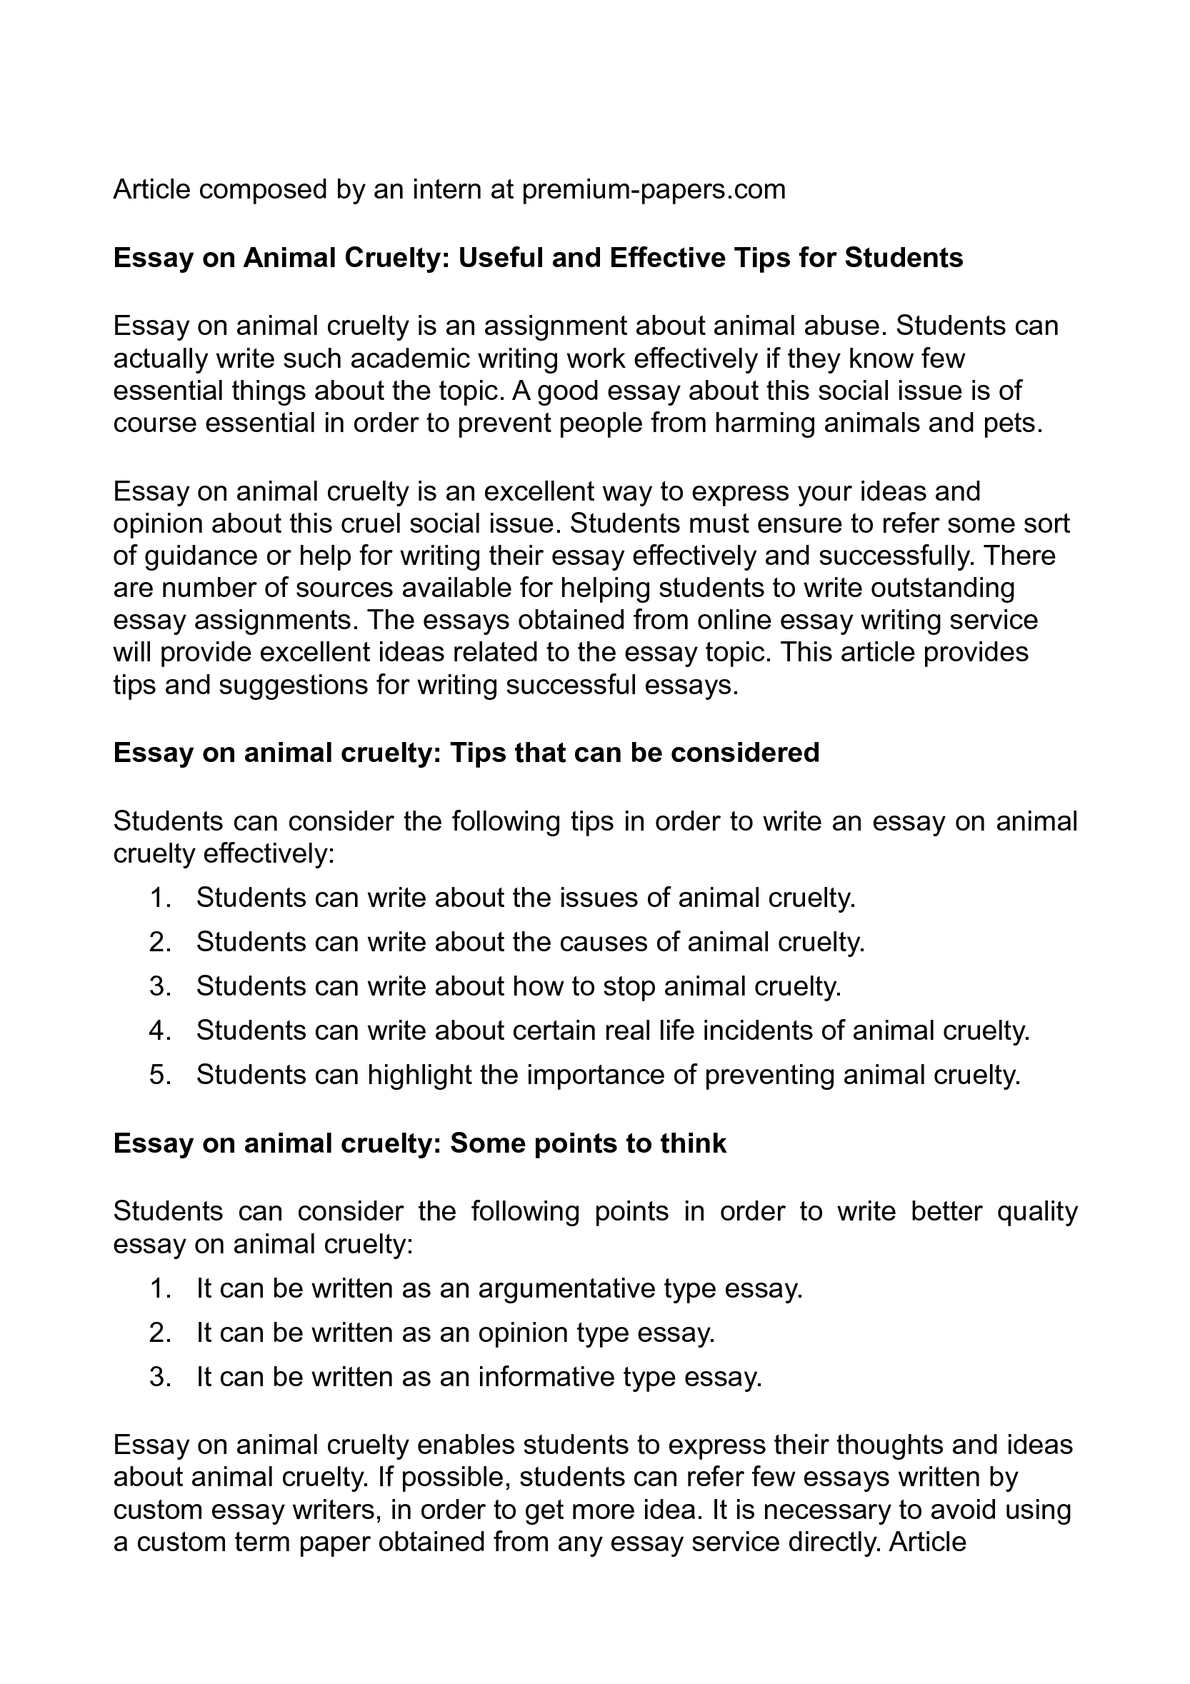 essay on animal cruelty useful and effective tips for  essay on animal cruelty useful and effective tips for students